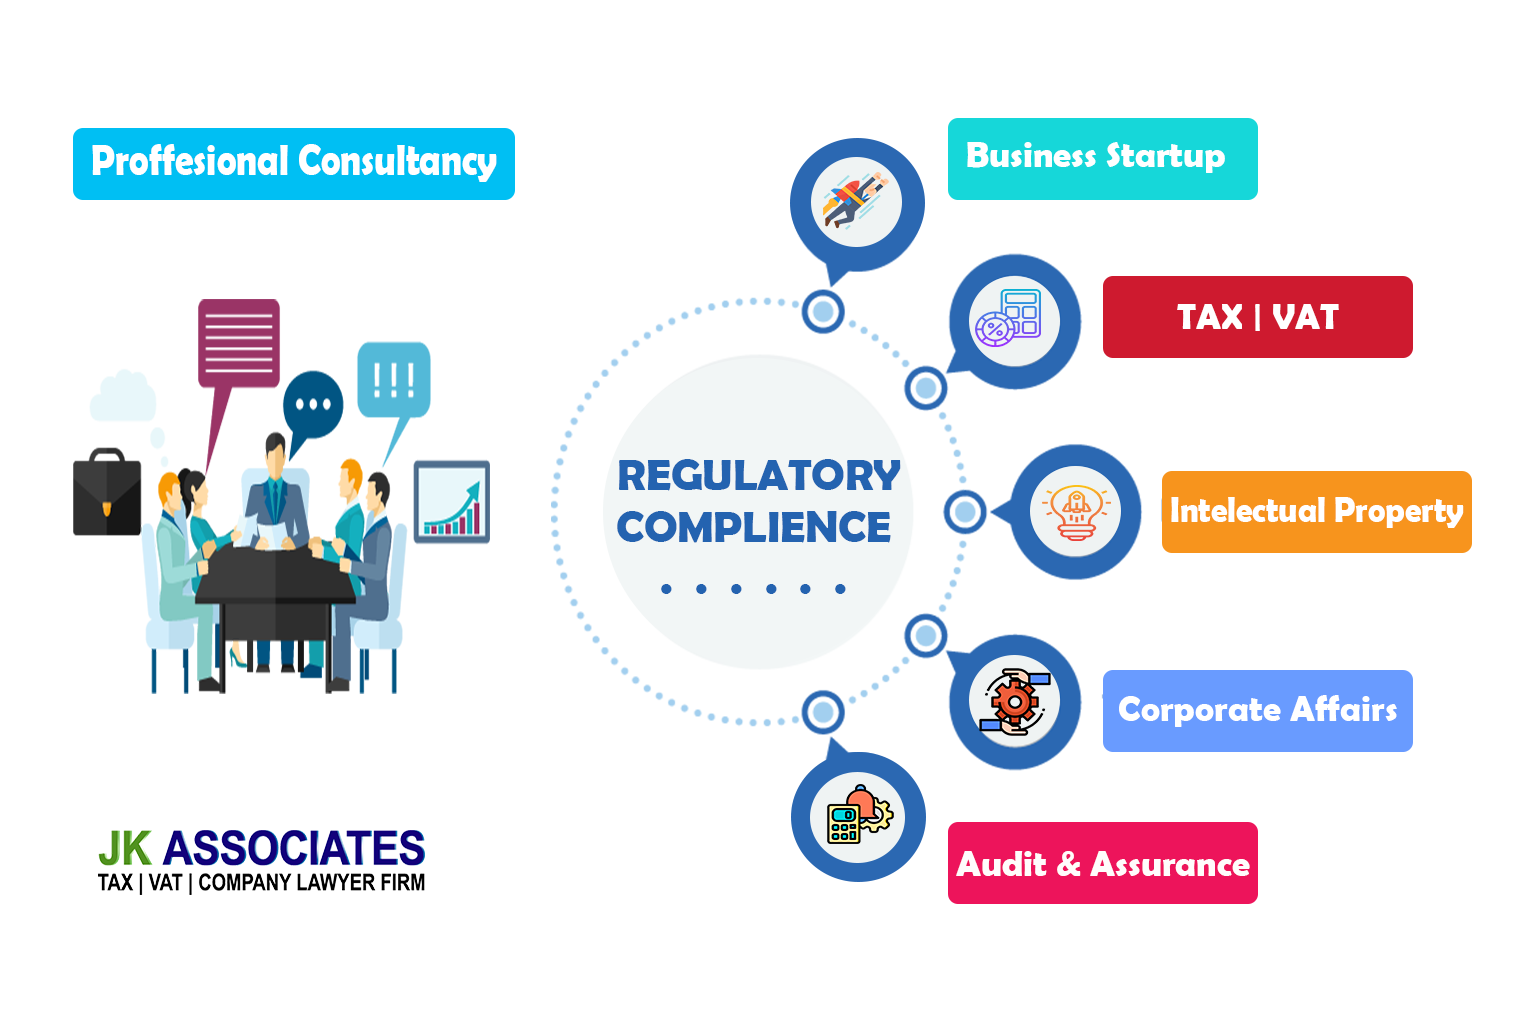 jk-associates-tax-lawyer-vat-lawyer-company-registration-company-formation-company-lawyer-trademark-trade-mark-copyright-copy-right-patent-lawyer-in-bangladesh-trade-license-best-company-lawyer-in-dhaka